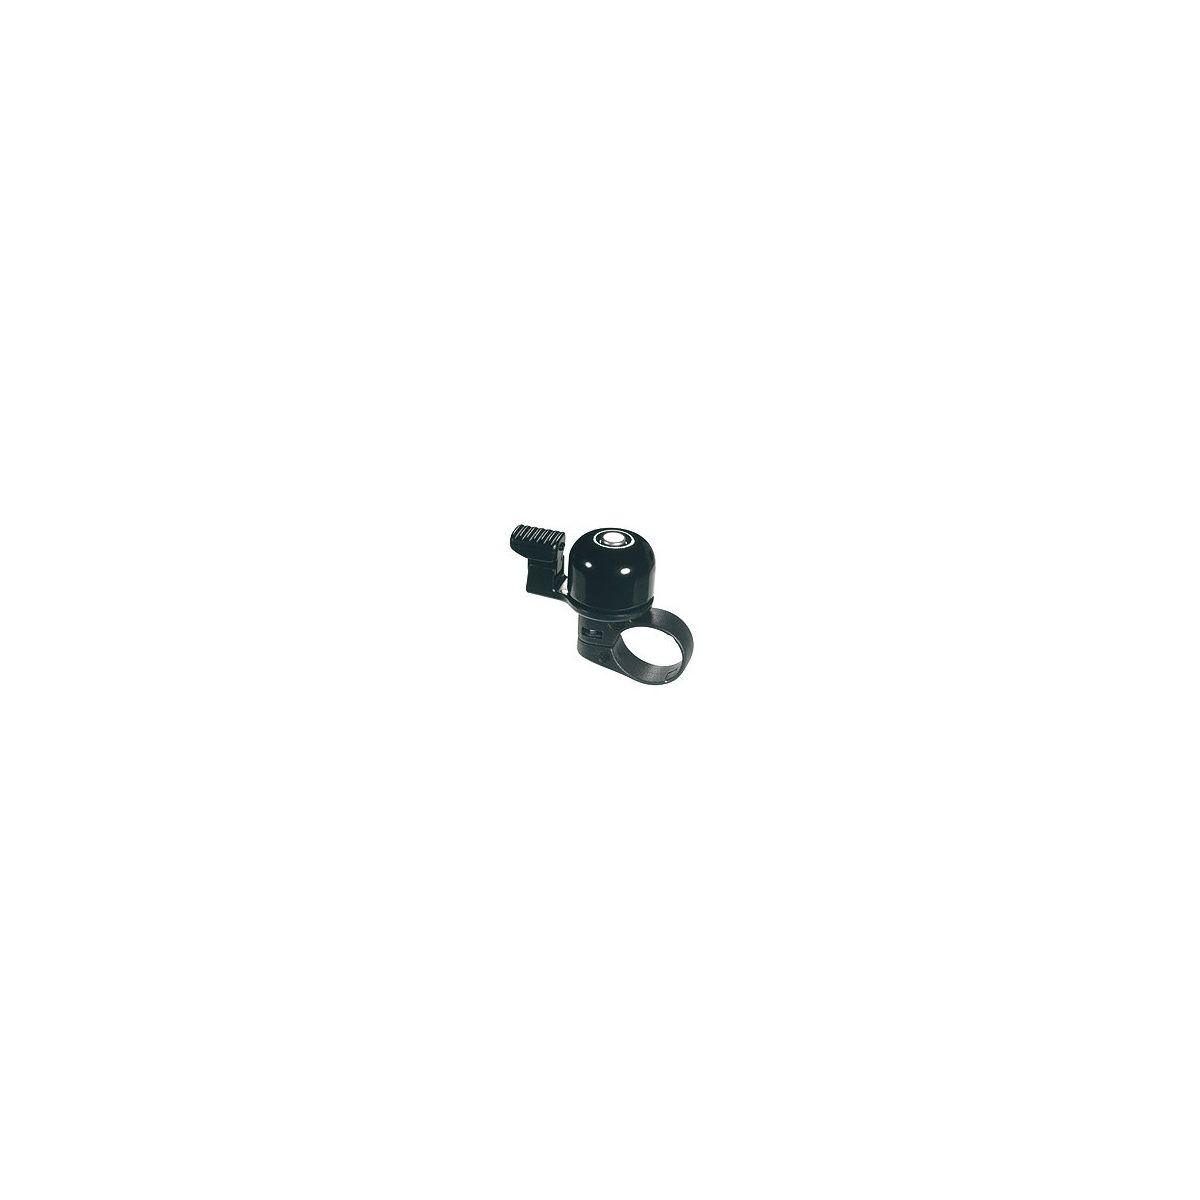 Mounty Special Billy Micro bell | Misc. Handlebars and Stems